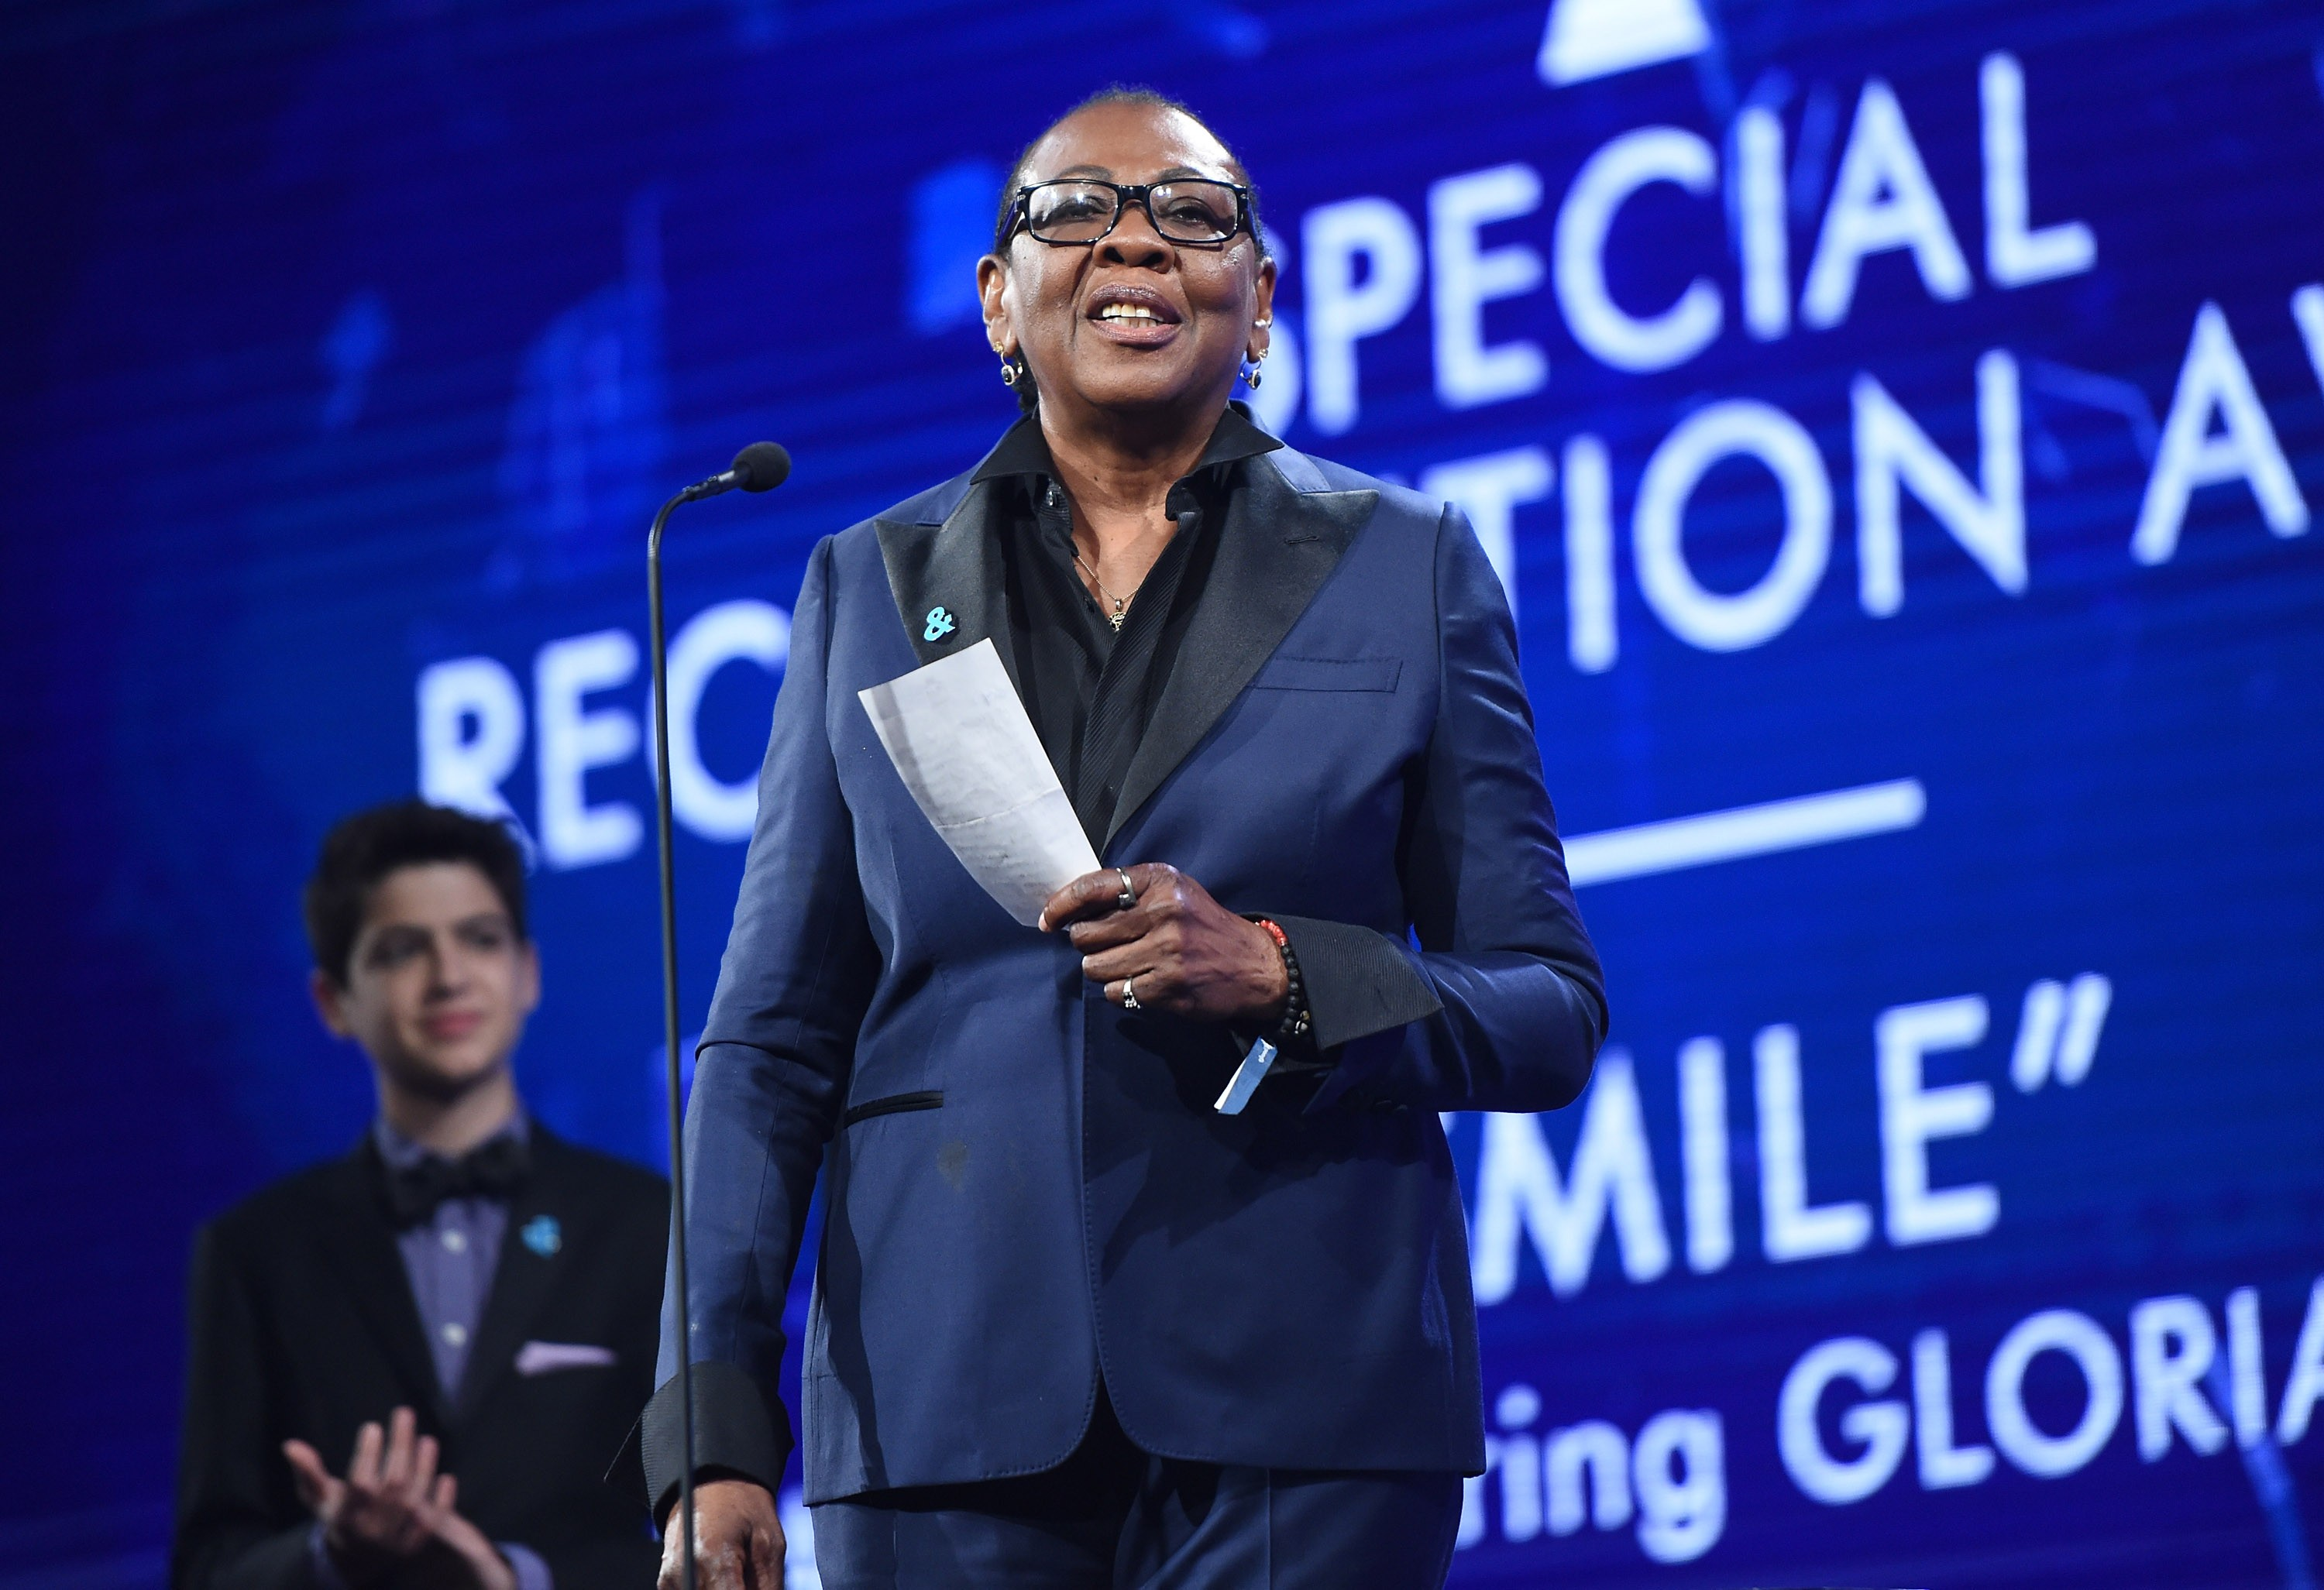 gloria-carter-glaad-special-recognition-award-speech-jay-z-youtube-watch